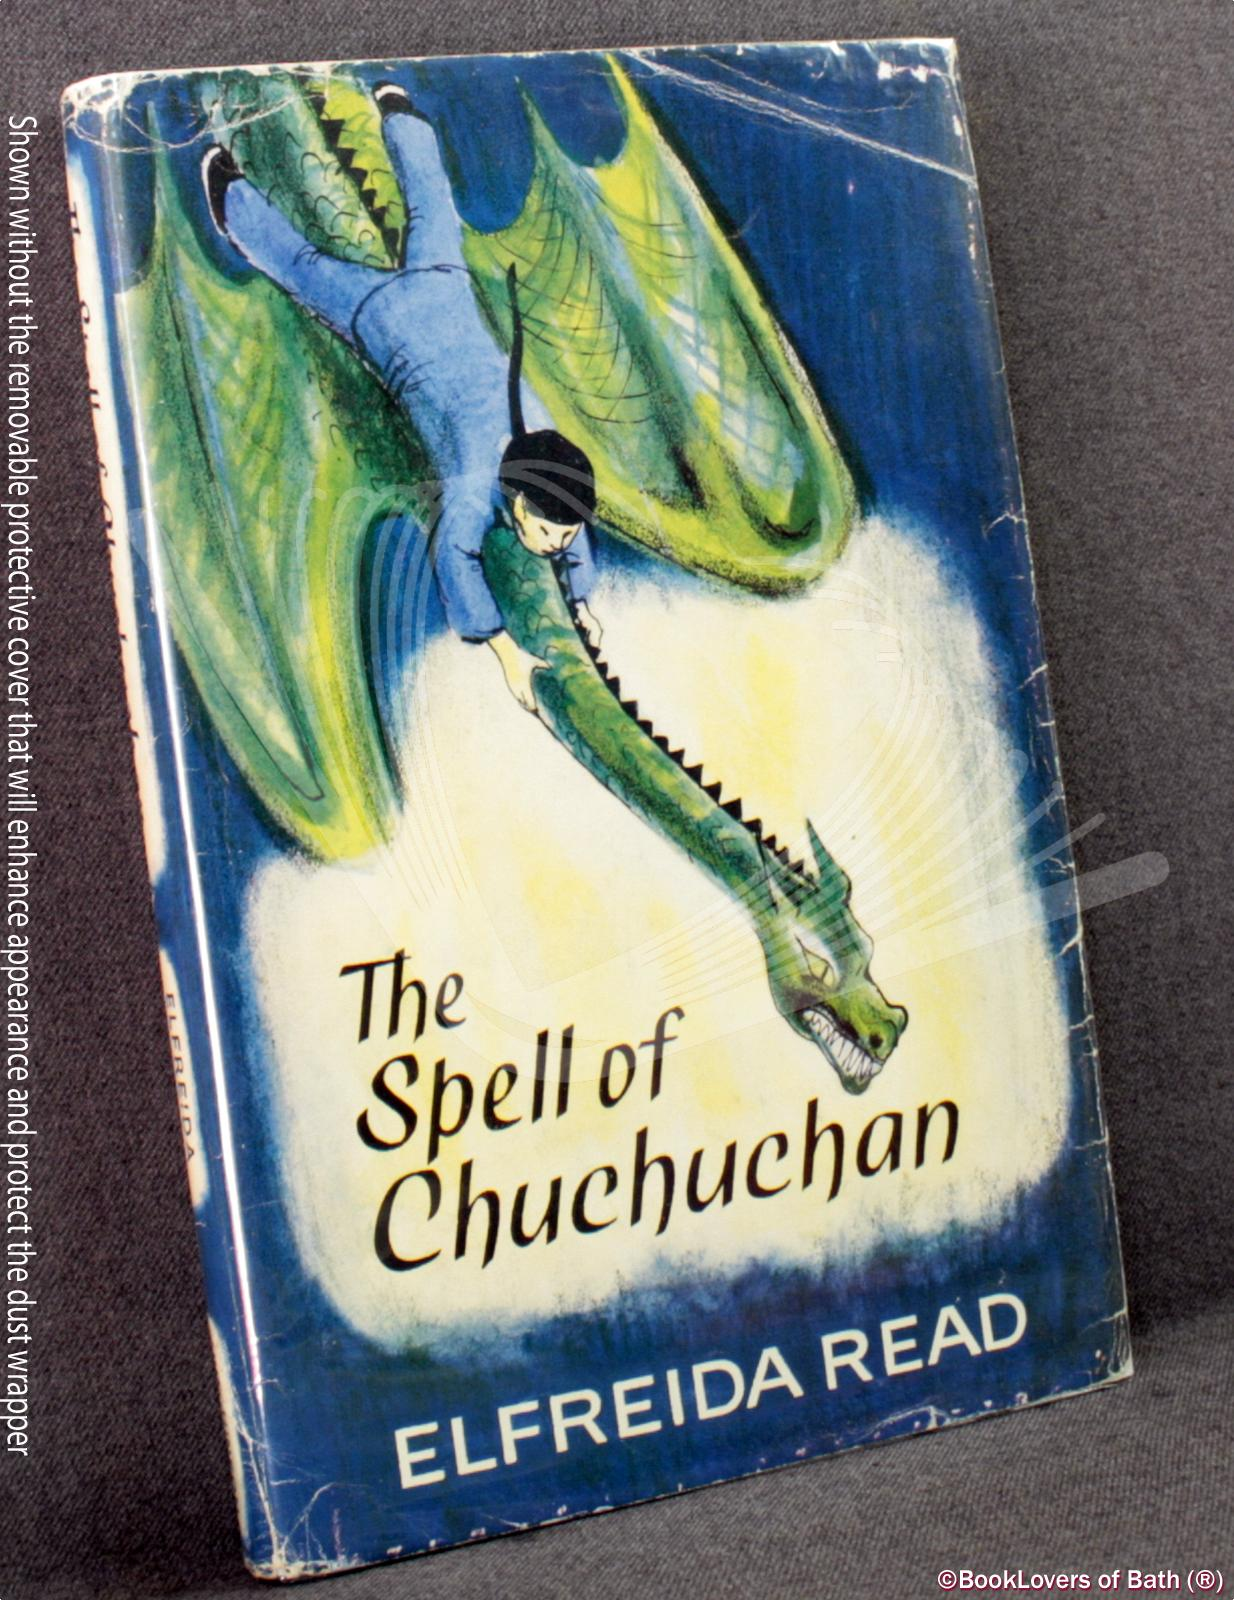 The Spell of Chuchuchan - Elfreida Read